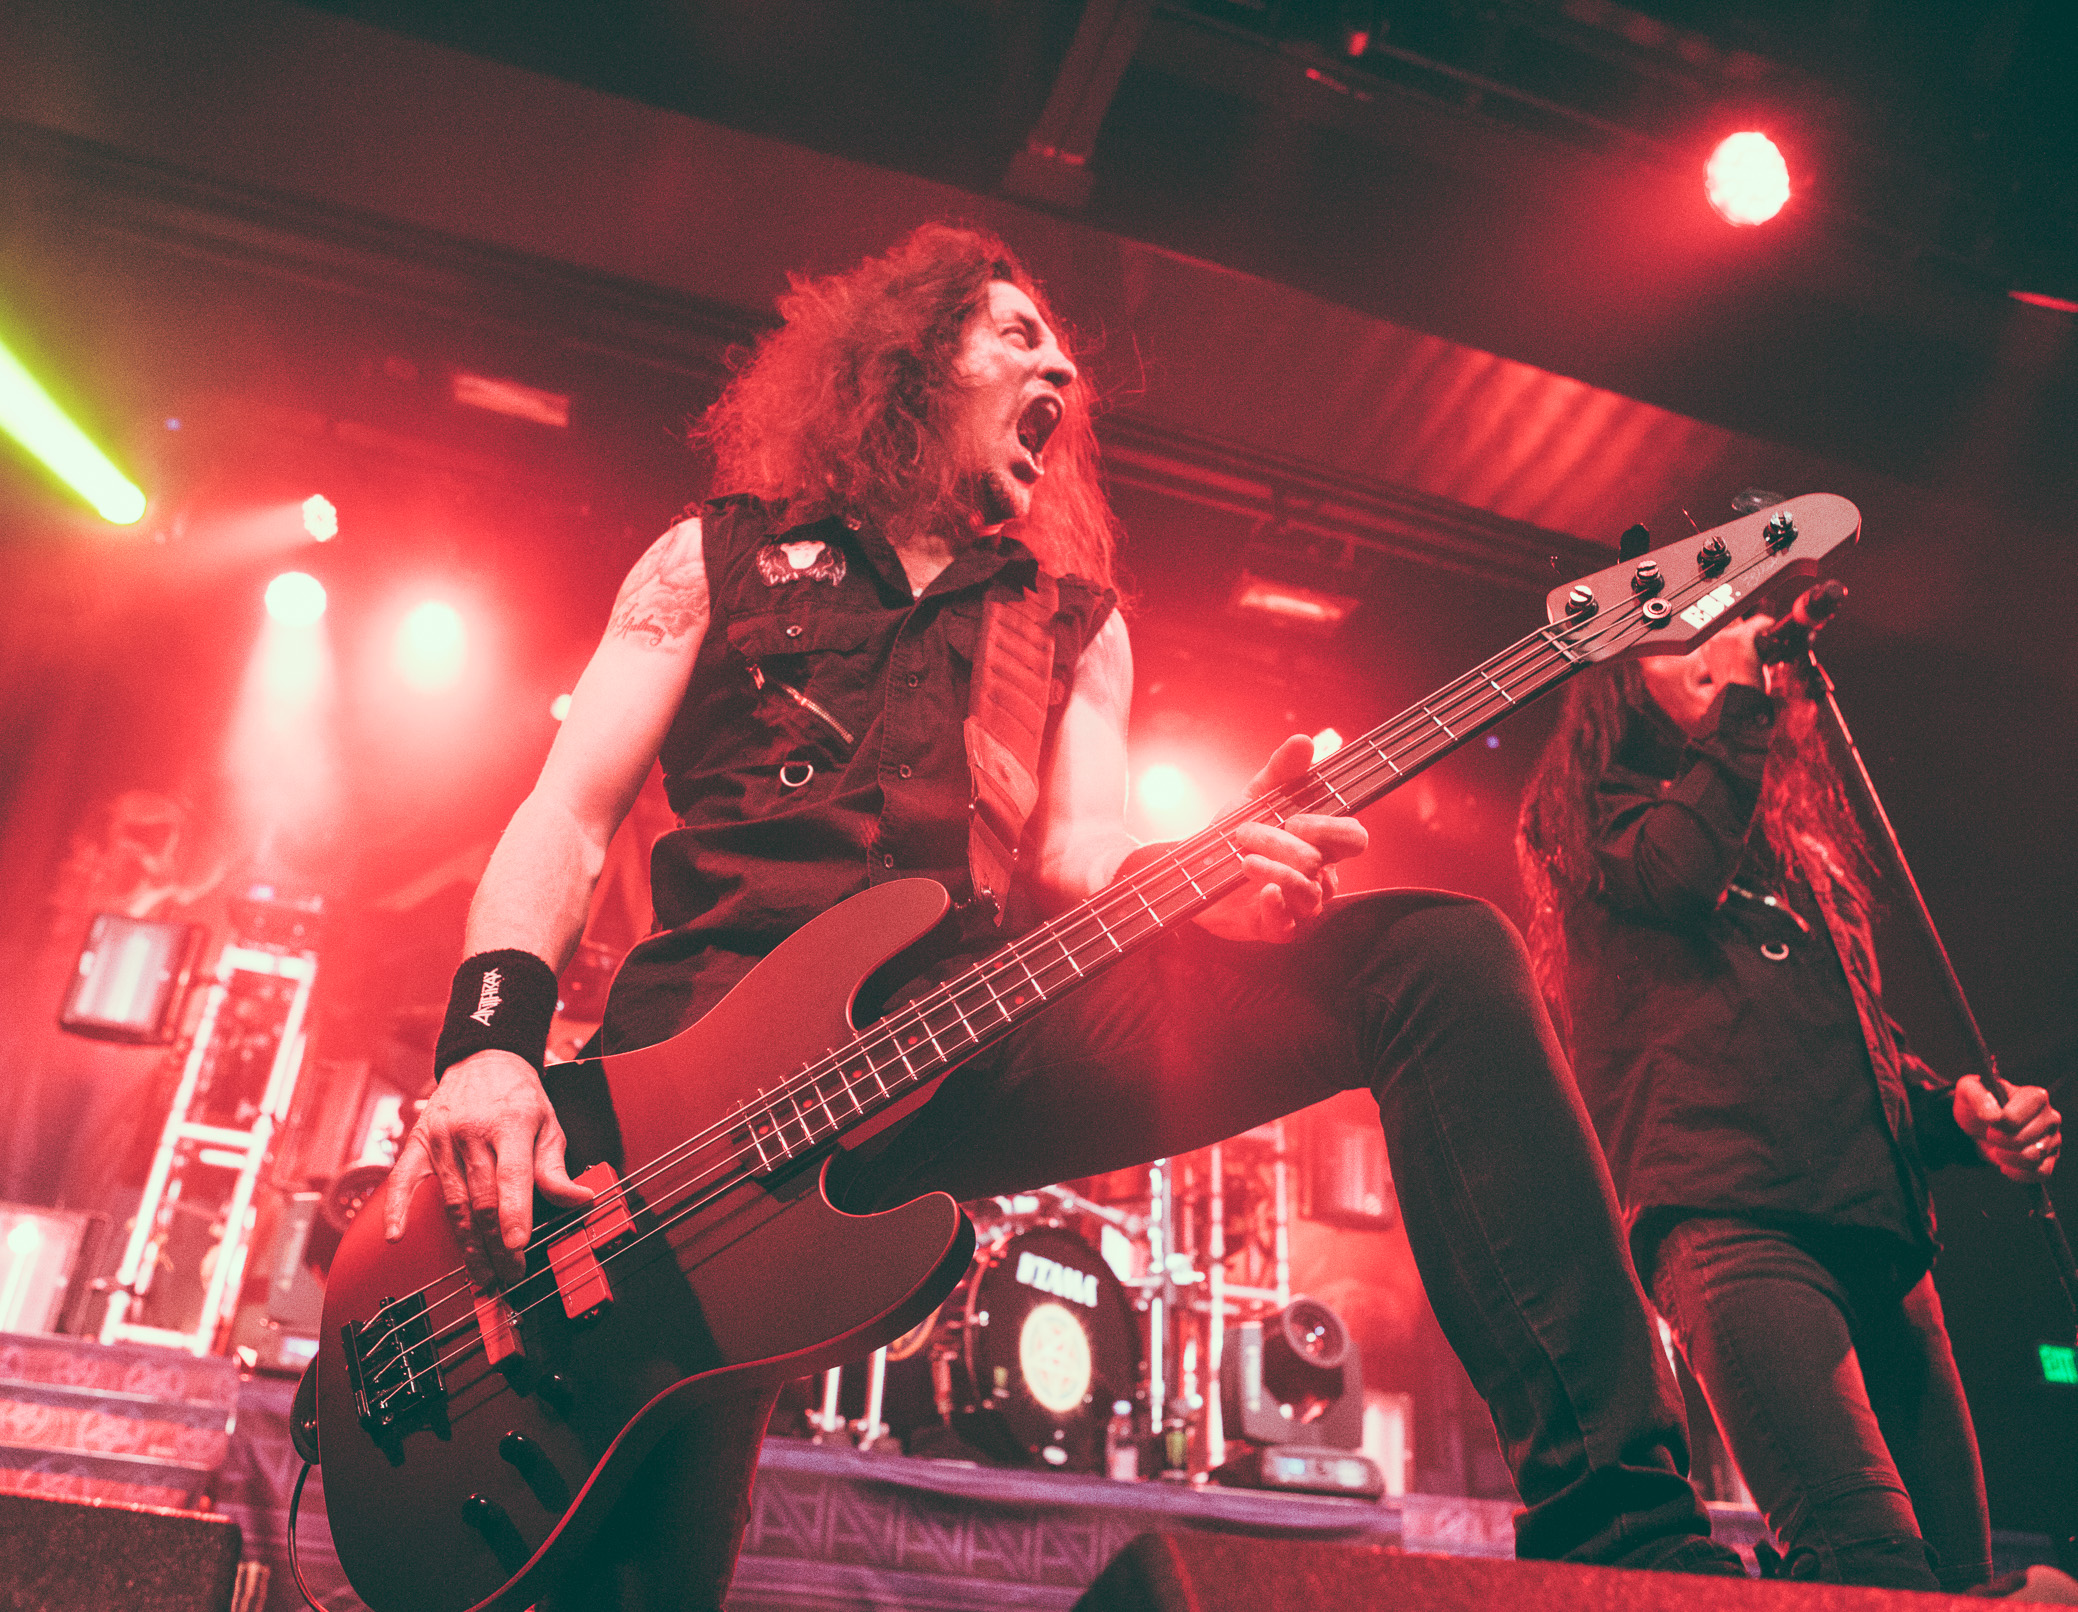 Frank Bello of Anthrax performs at Iron City in Birmingham, Alabama on February 6th, 2018. (Photo by David A. Smith/DSmithScenes)